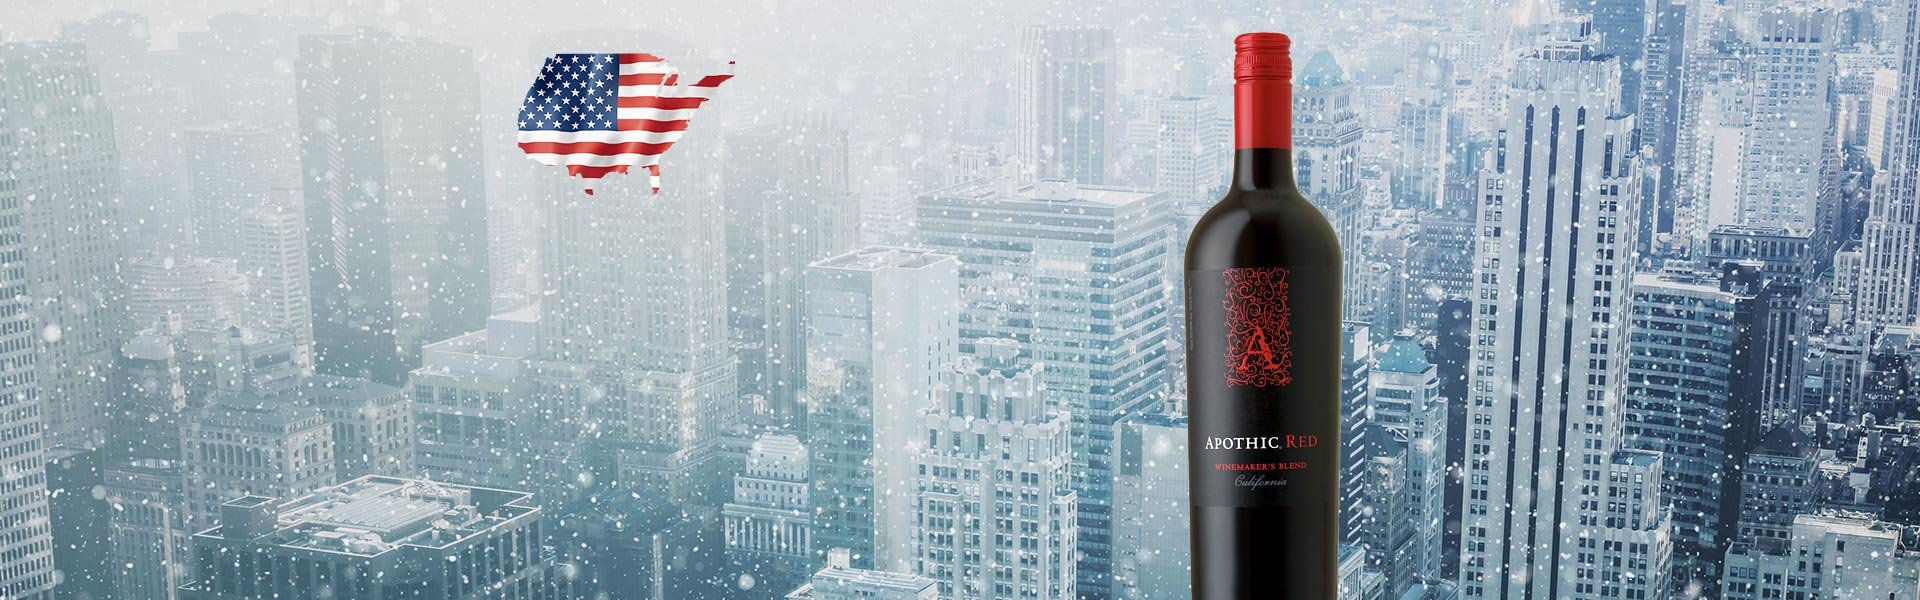 2016 Apothic Red California